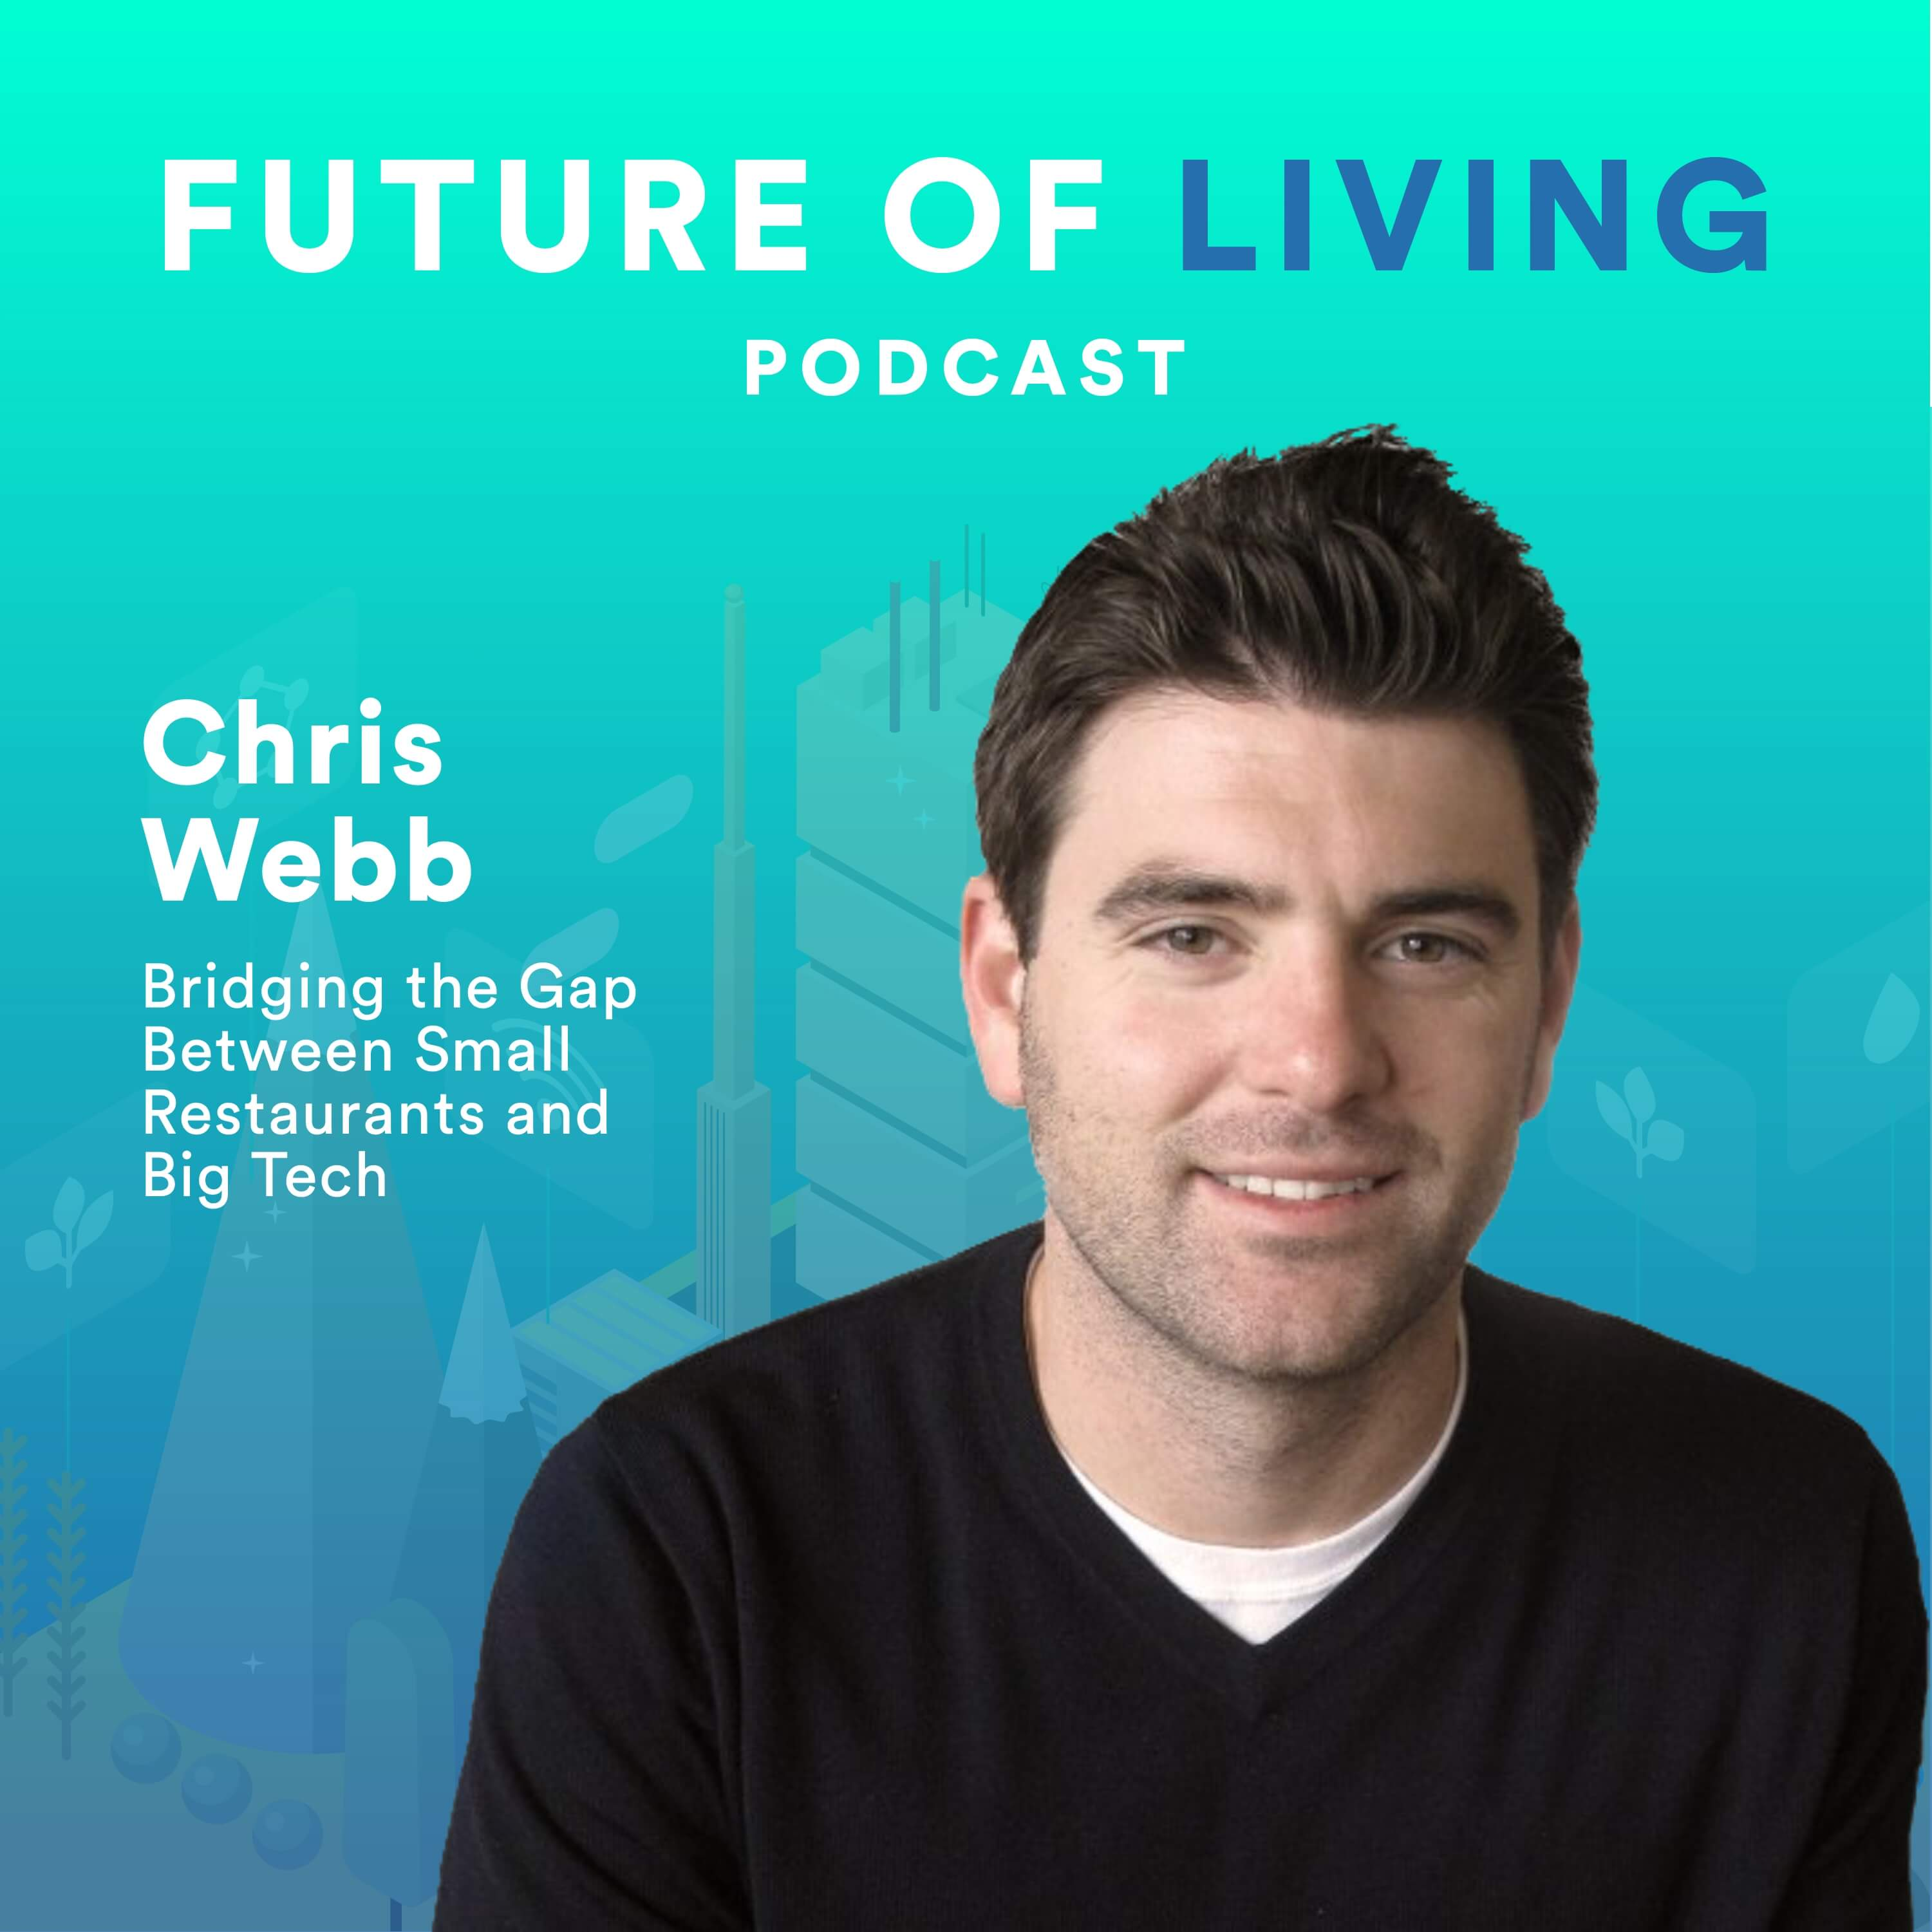 Small Restaurants, Big Tech with Chis Webb, Co-founder & CEO of ChowNow